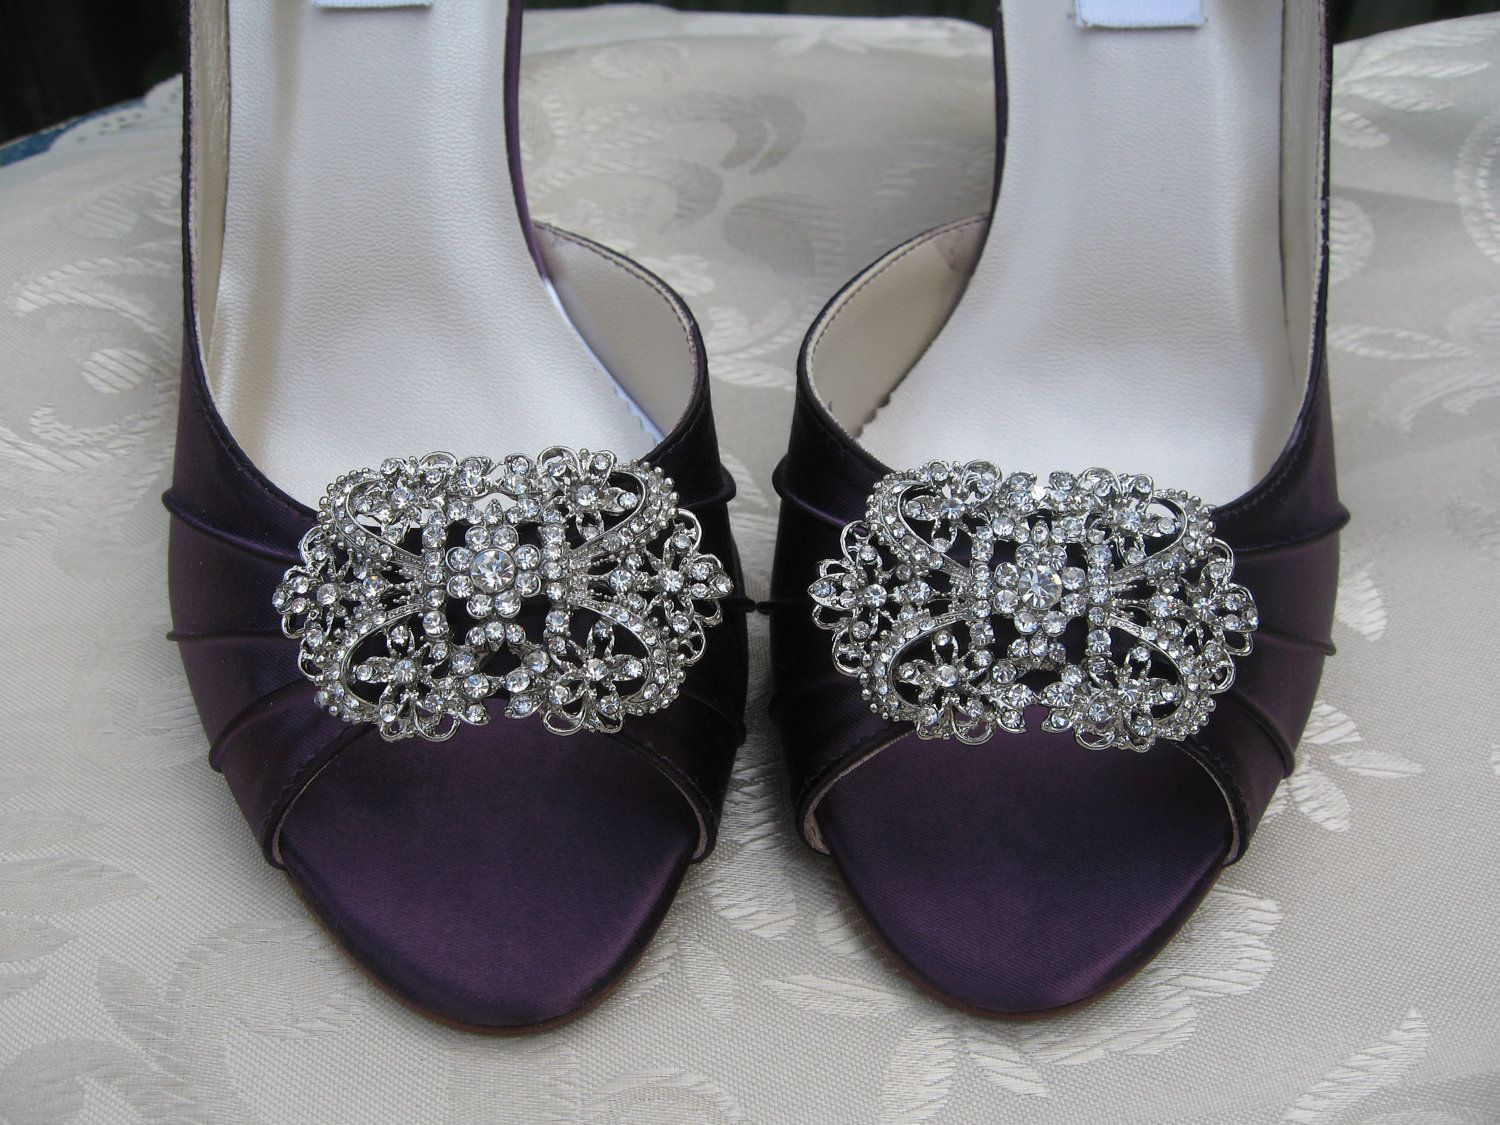 2f34800cdb9658 Vintage Inspired Purple Eggplant Bridal Shoes with Square Crystal Rhinestone  Brooch - Over 100 Color Shoe Choices to Pick From.  145.99